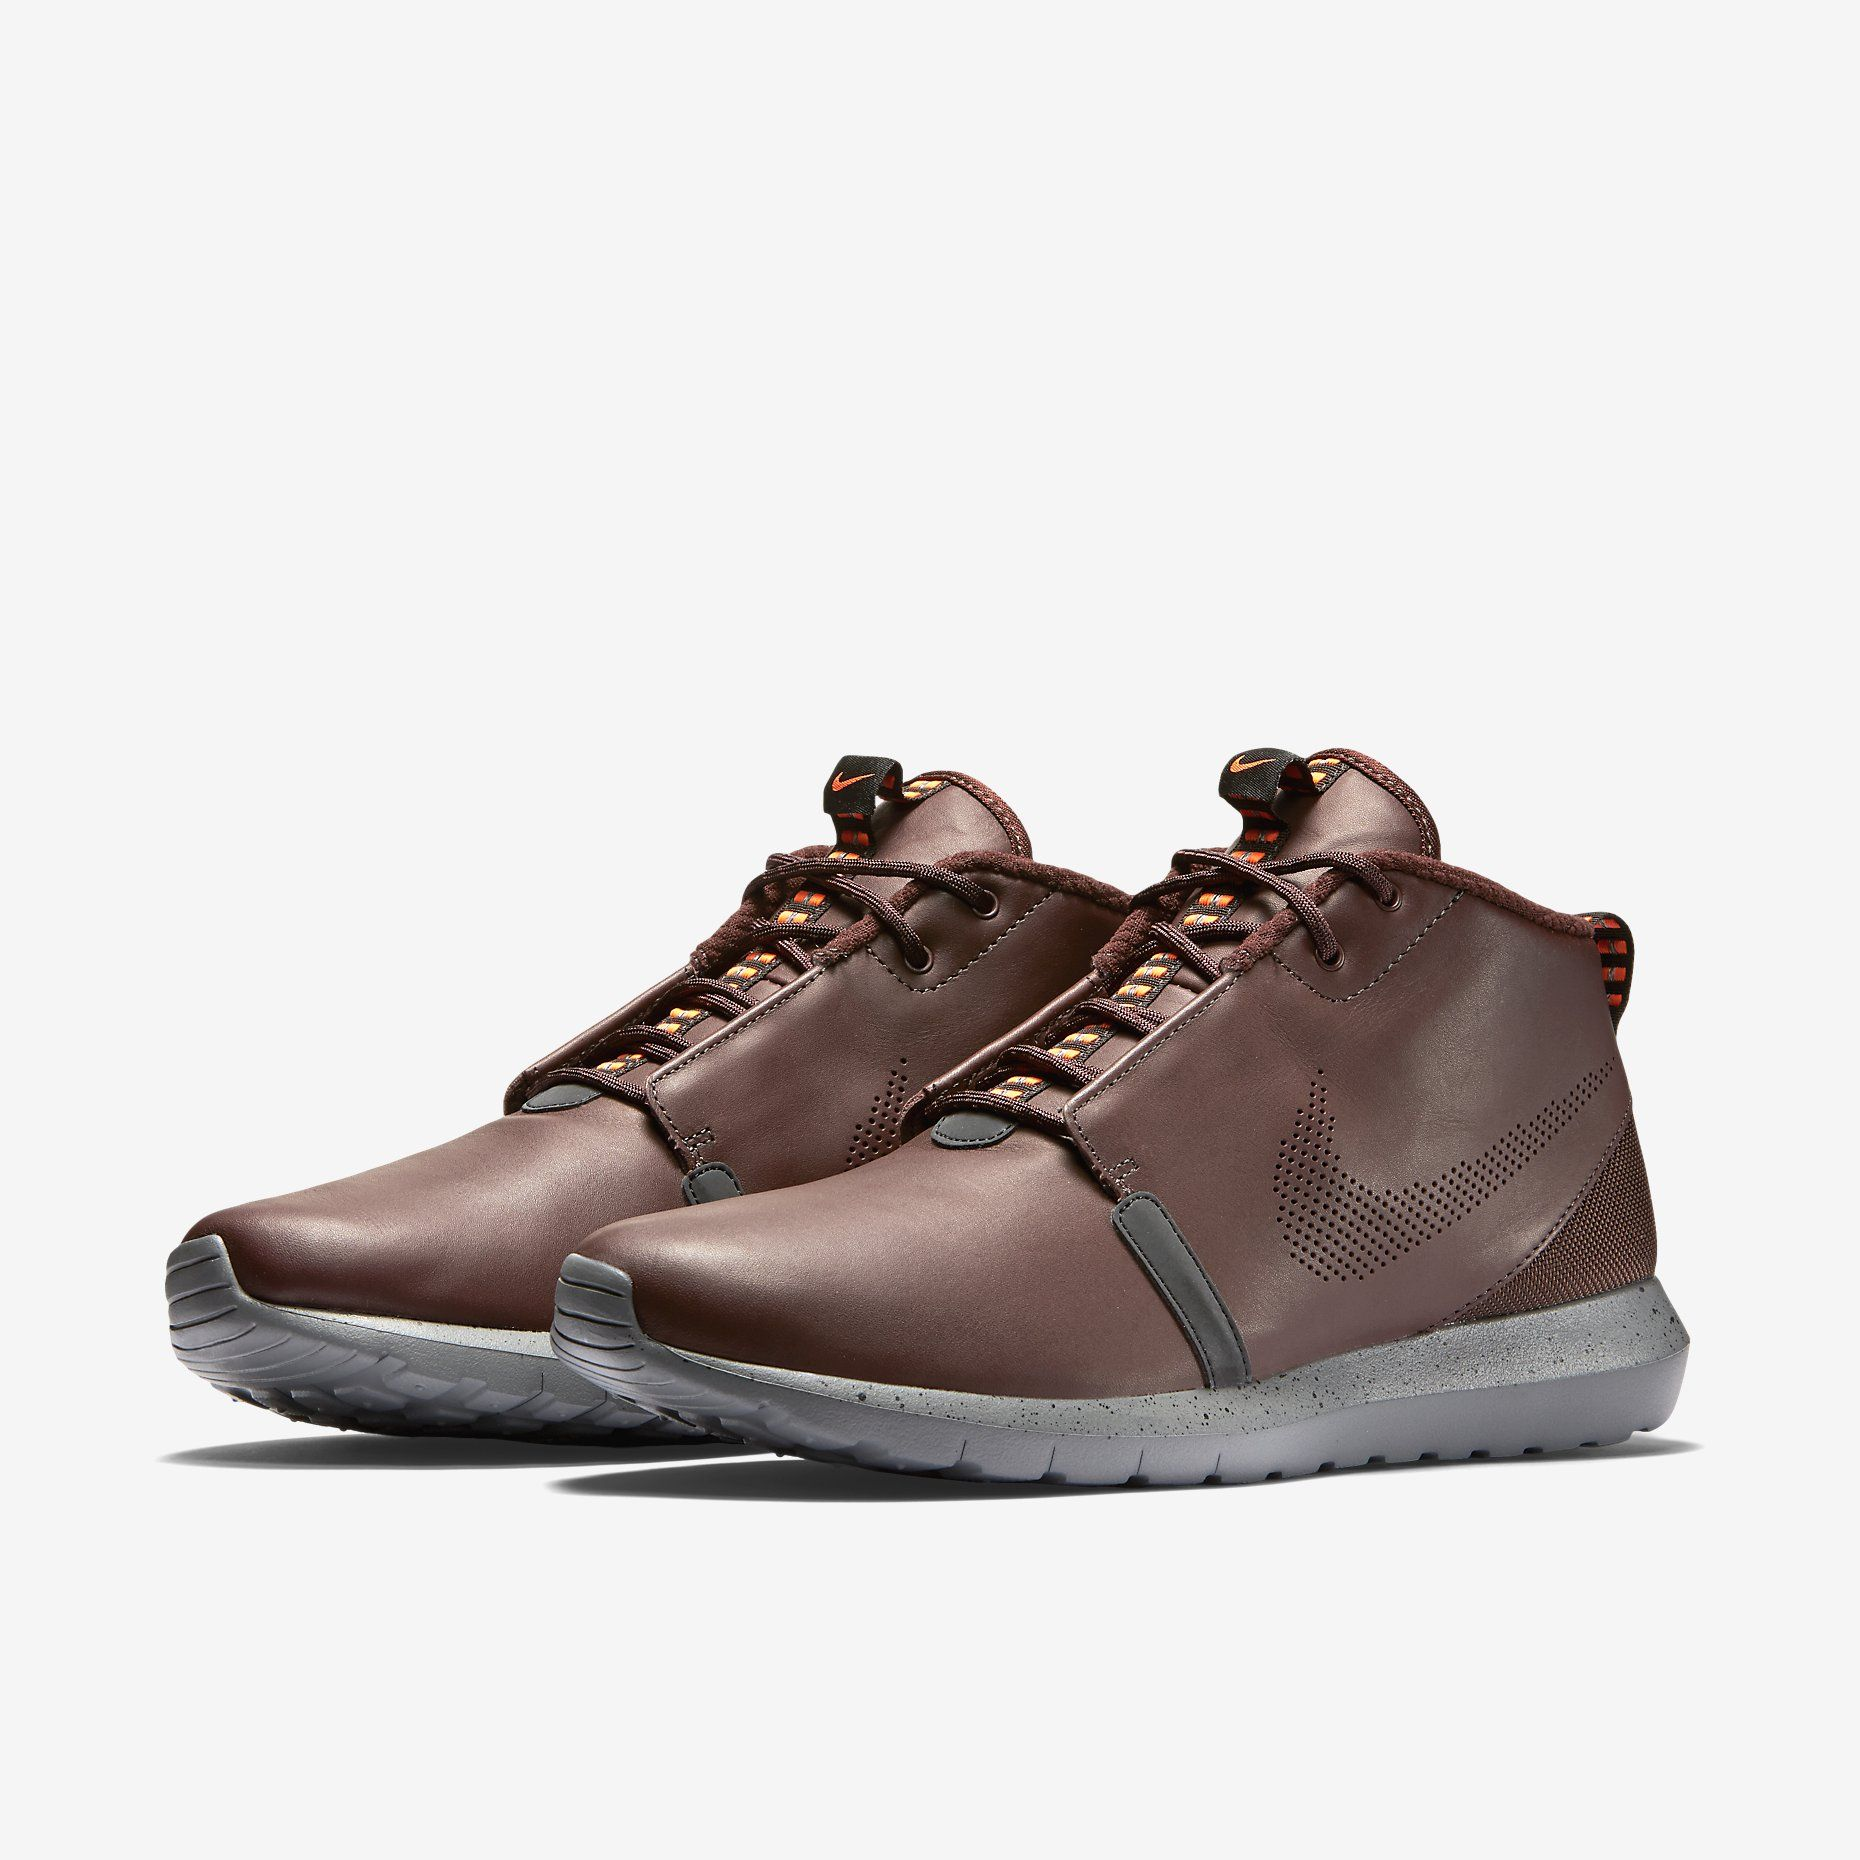 competitive price 148f9 34e83 Nike Roshe One SneakerBoot Men's SneakerBoot. Nike Store | mu_shin ...